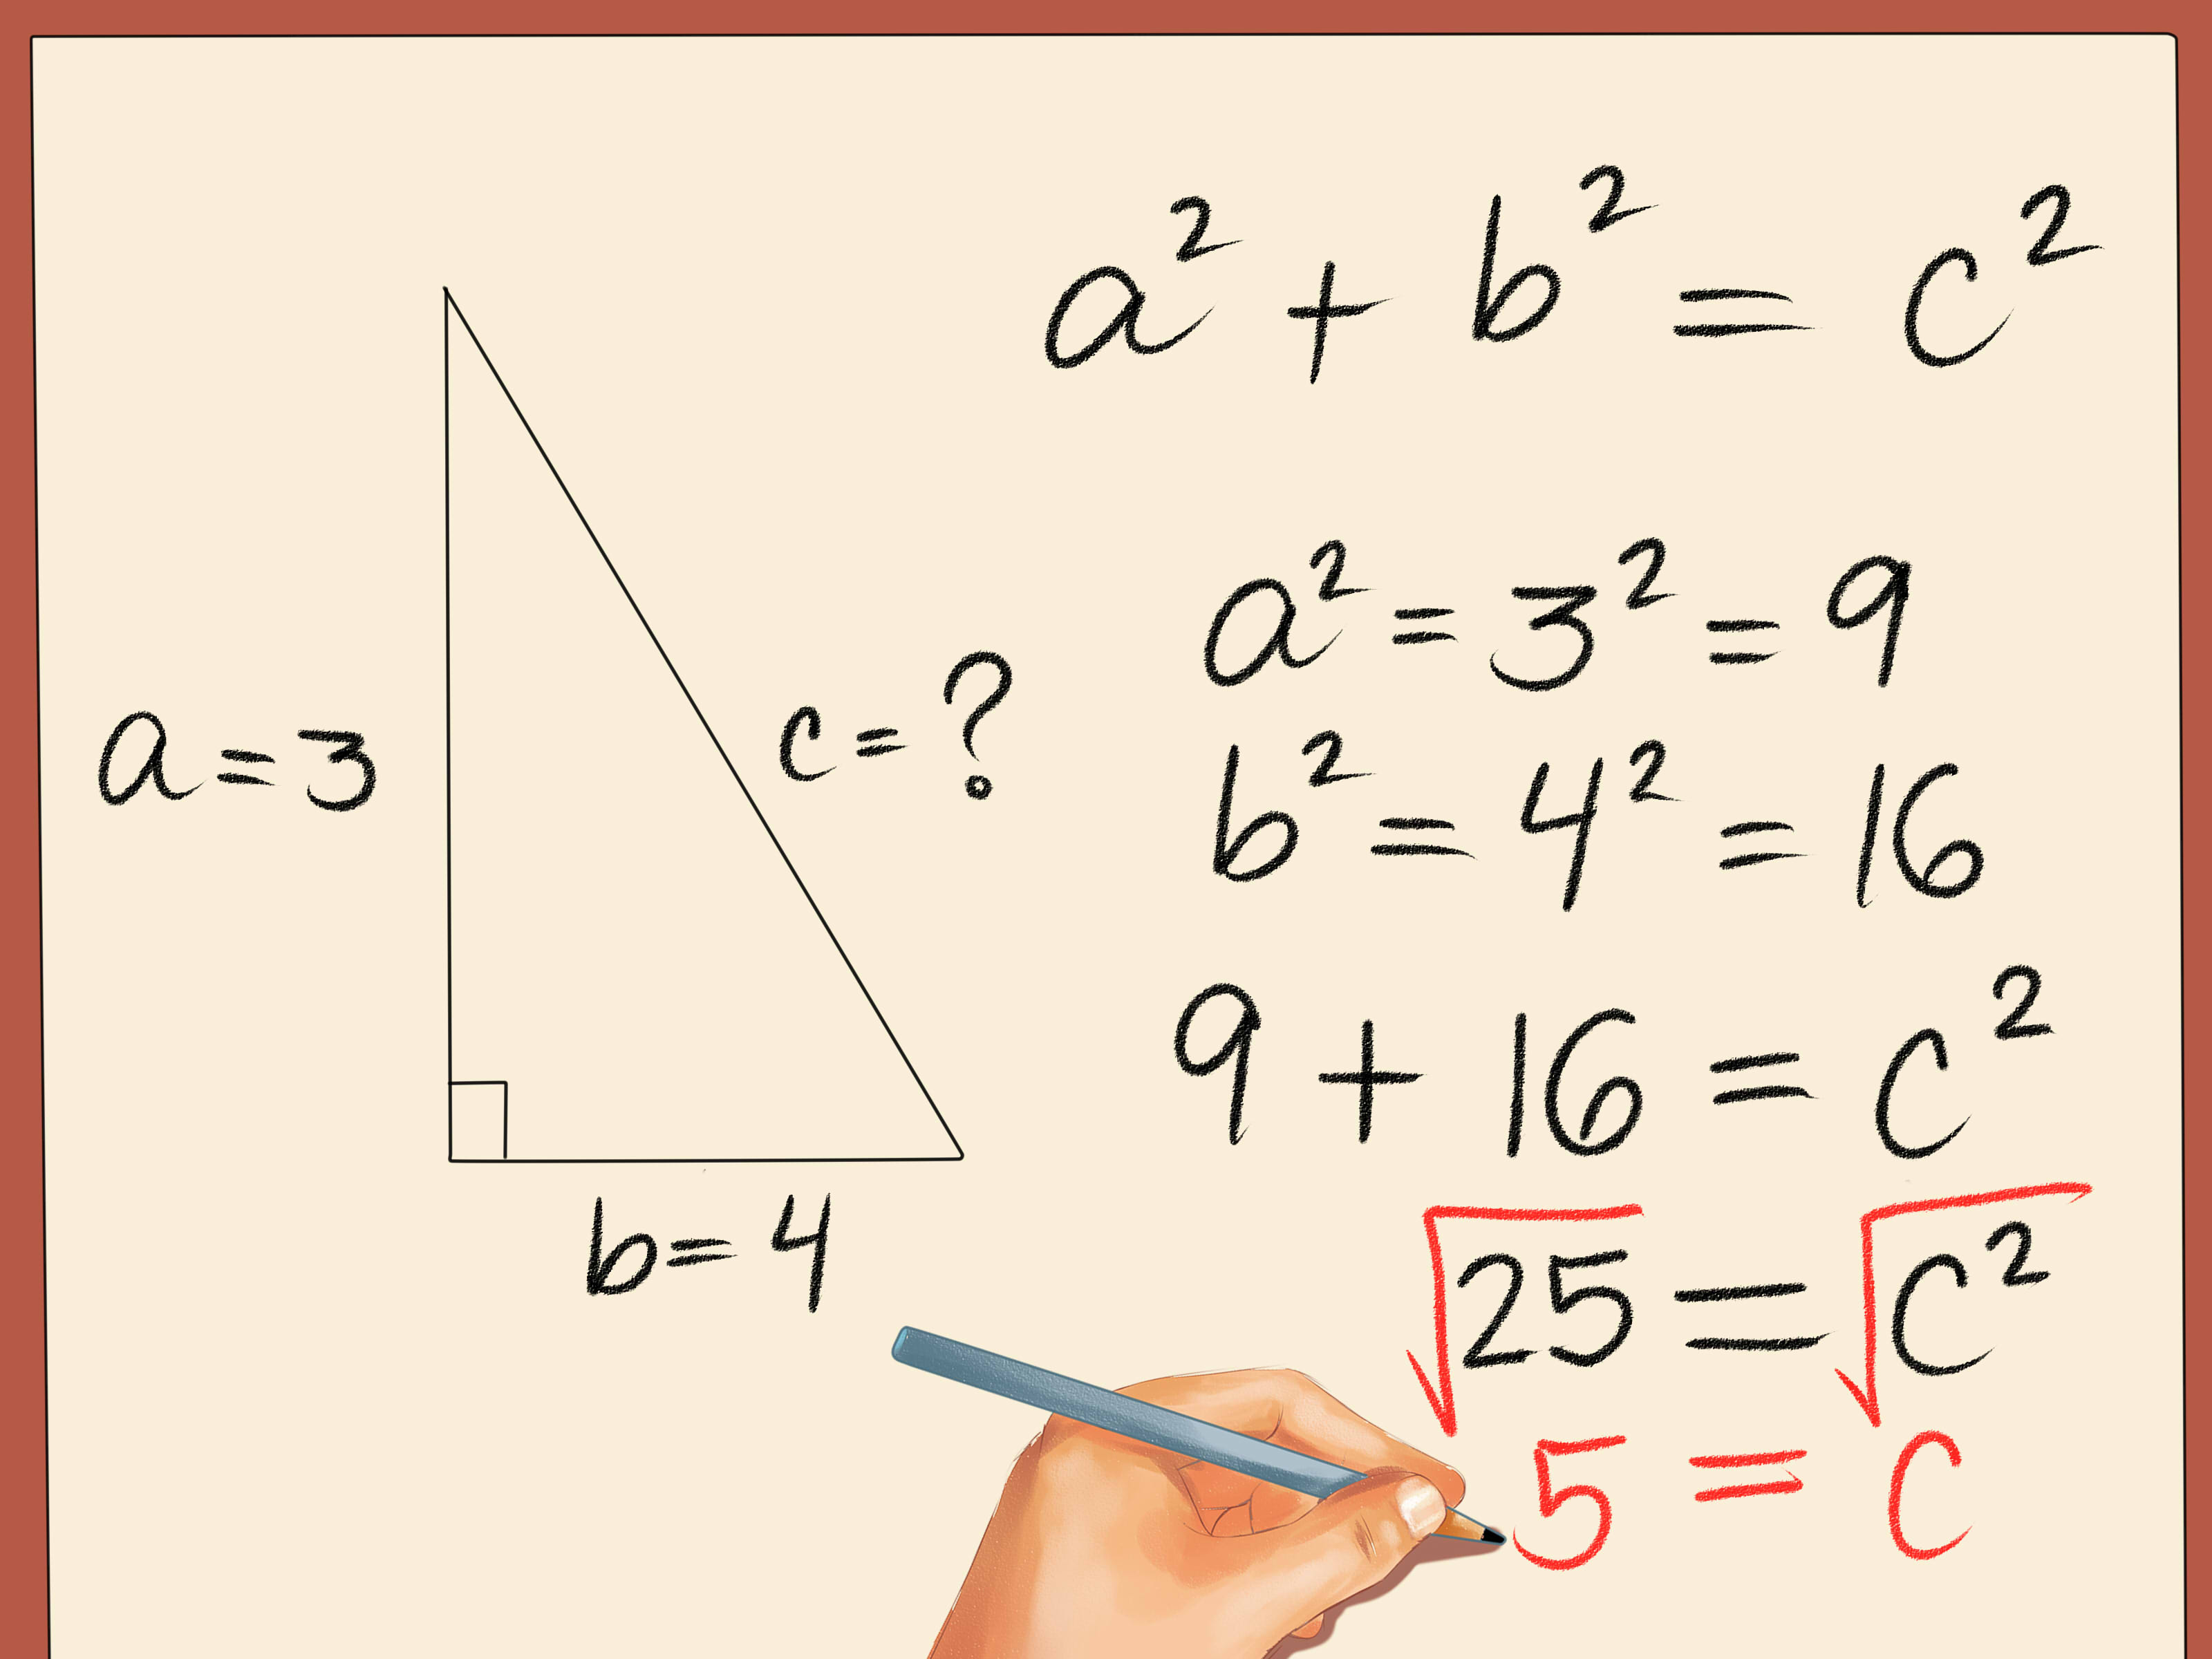 3 Easy Ways To Find The Length Of The Hypotenuse